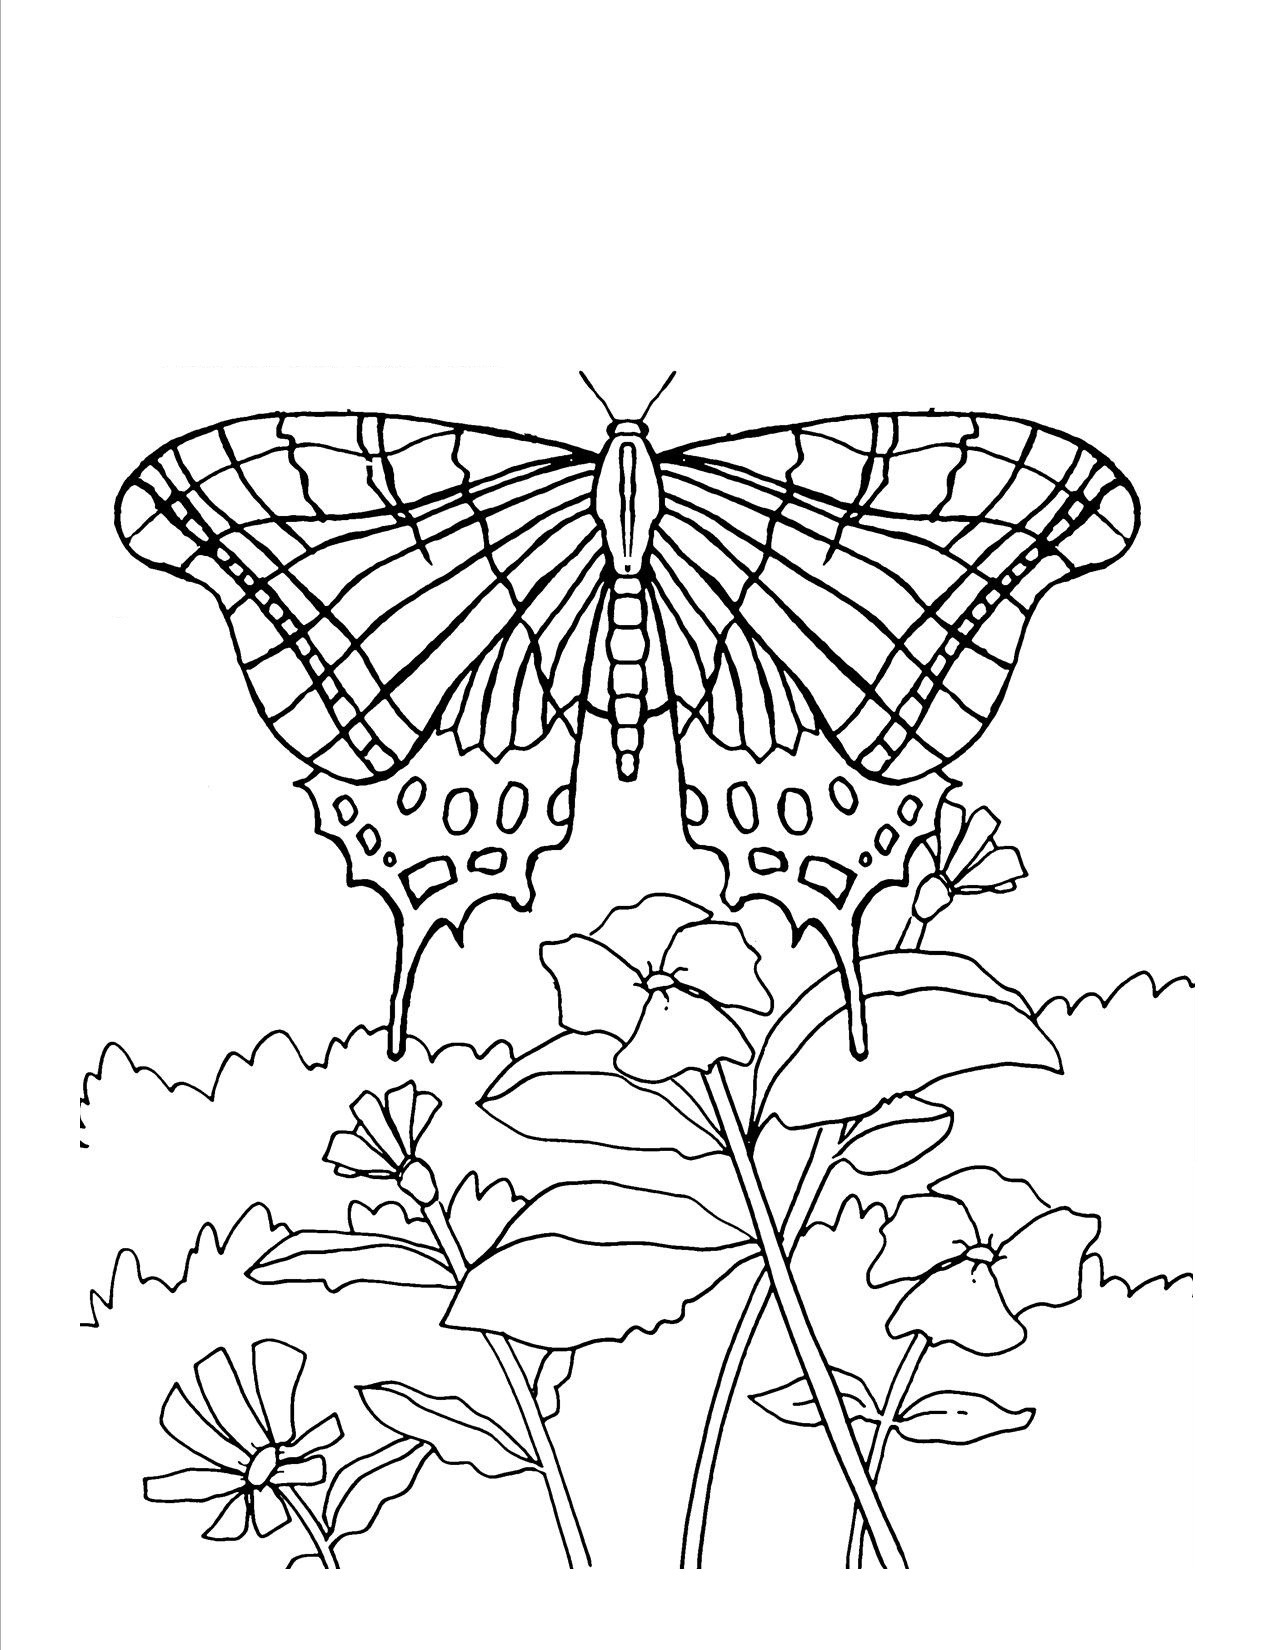 monarch butterfly coloring page monarch butterfly coloring pages to print free coloring monarch butterfly coloring page